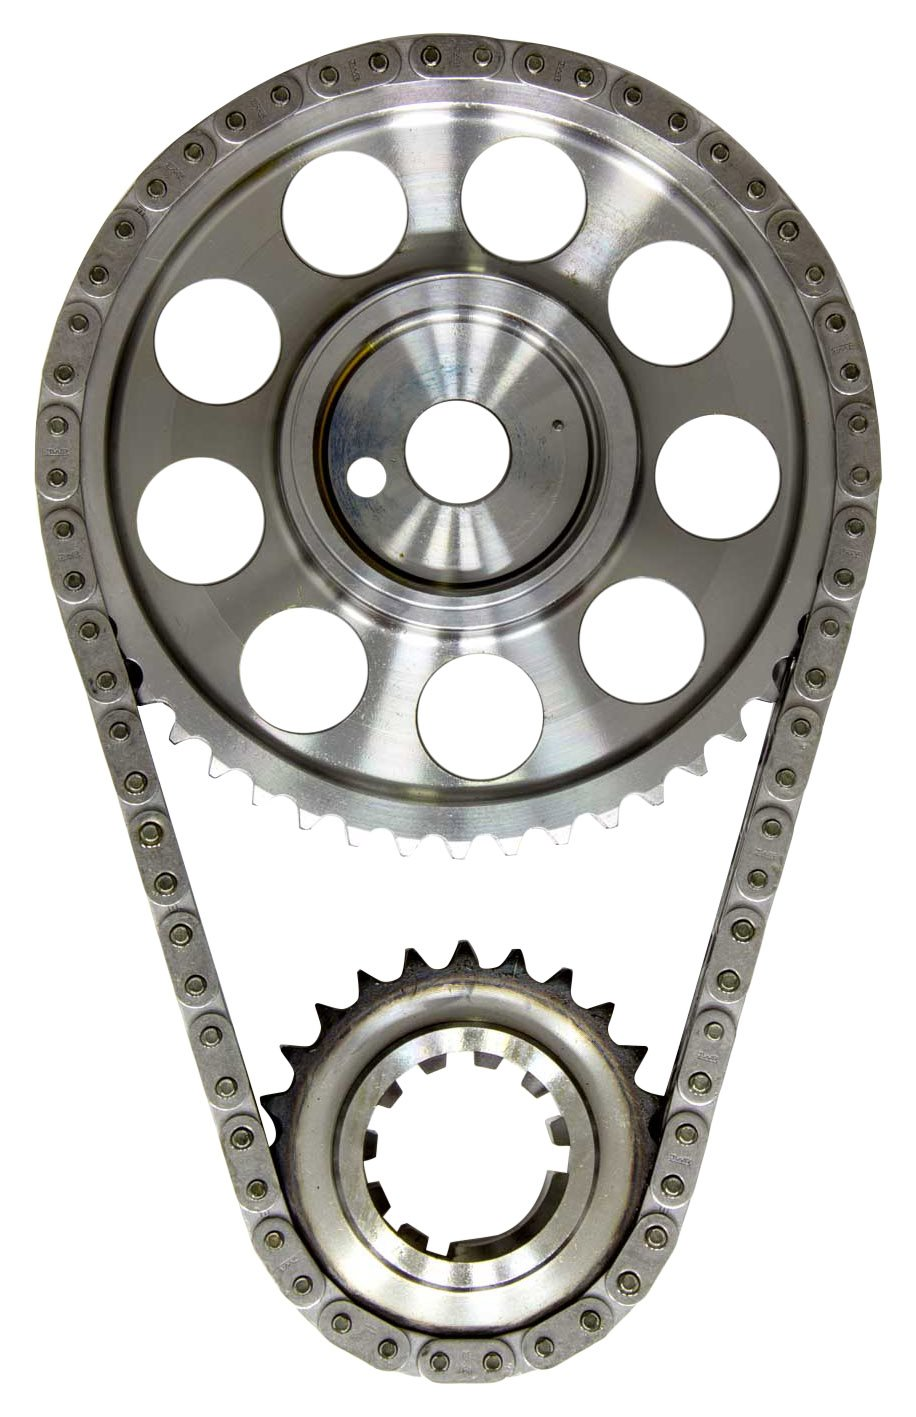 Eagle Specialty Products 440037505700 3.75 Stroke 4340 Forged Crankshaft for Small Block Chevy